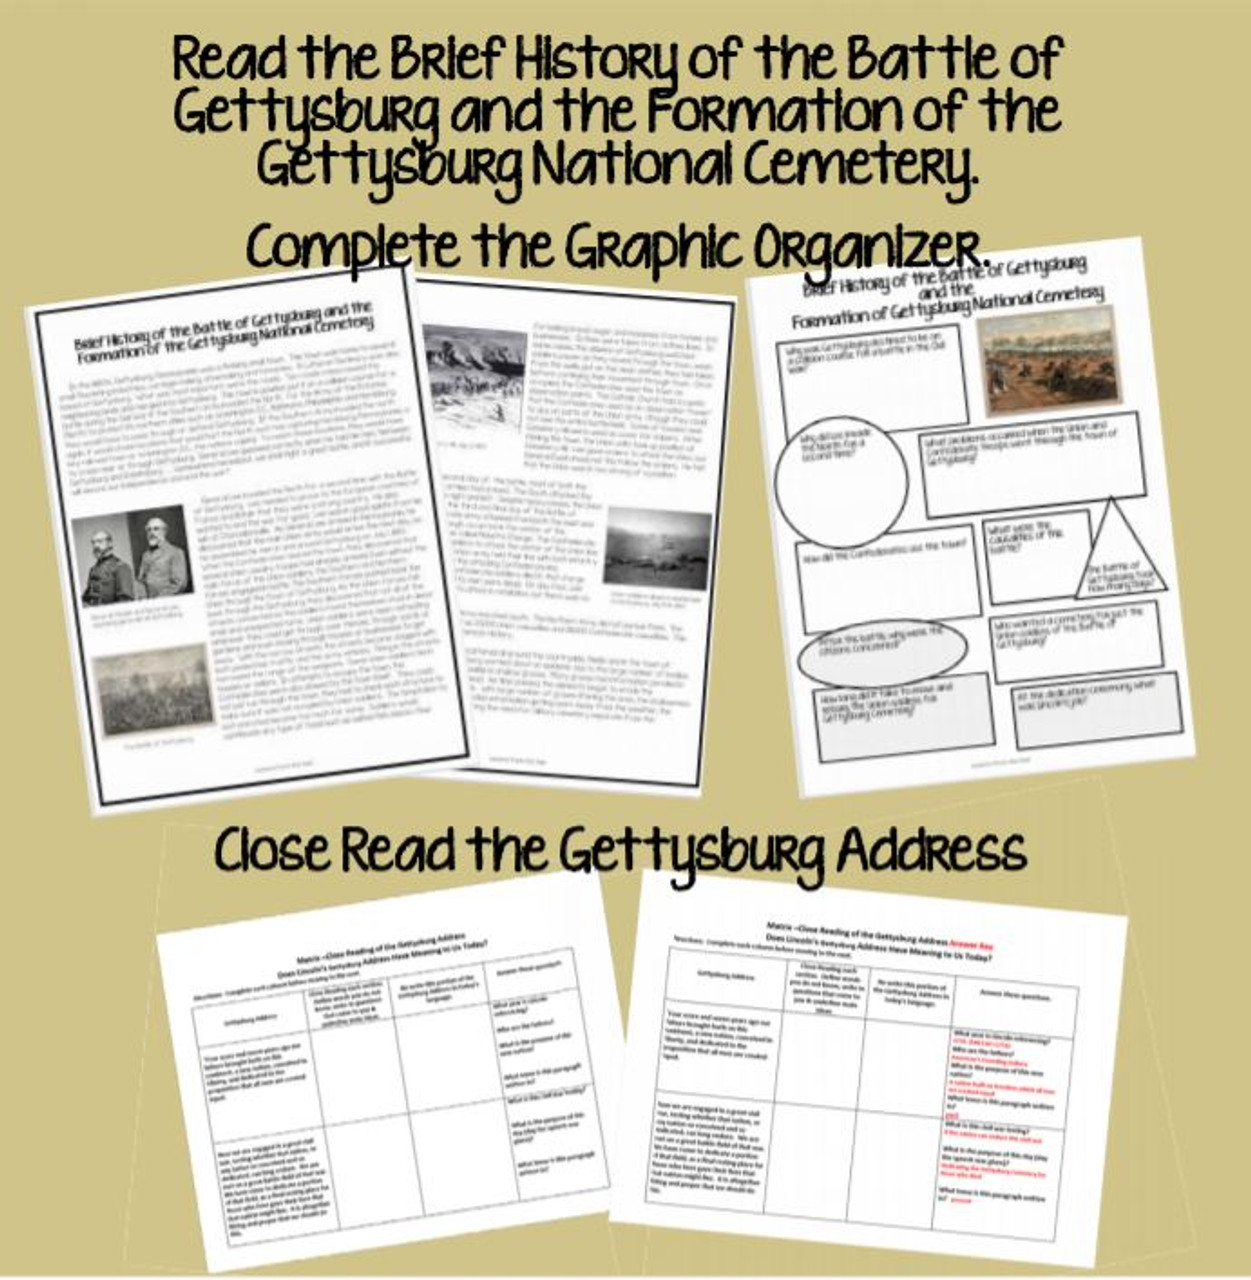 Close Reading the Gettysburg Address - Does It Have Meaning Today?